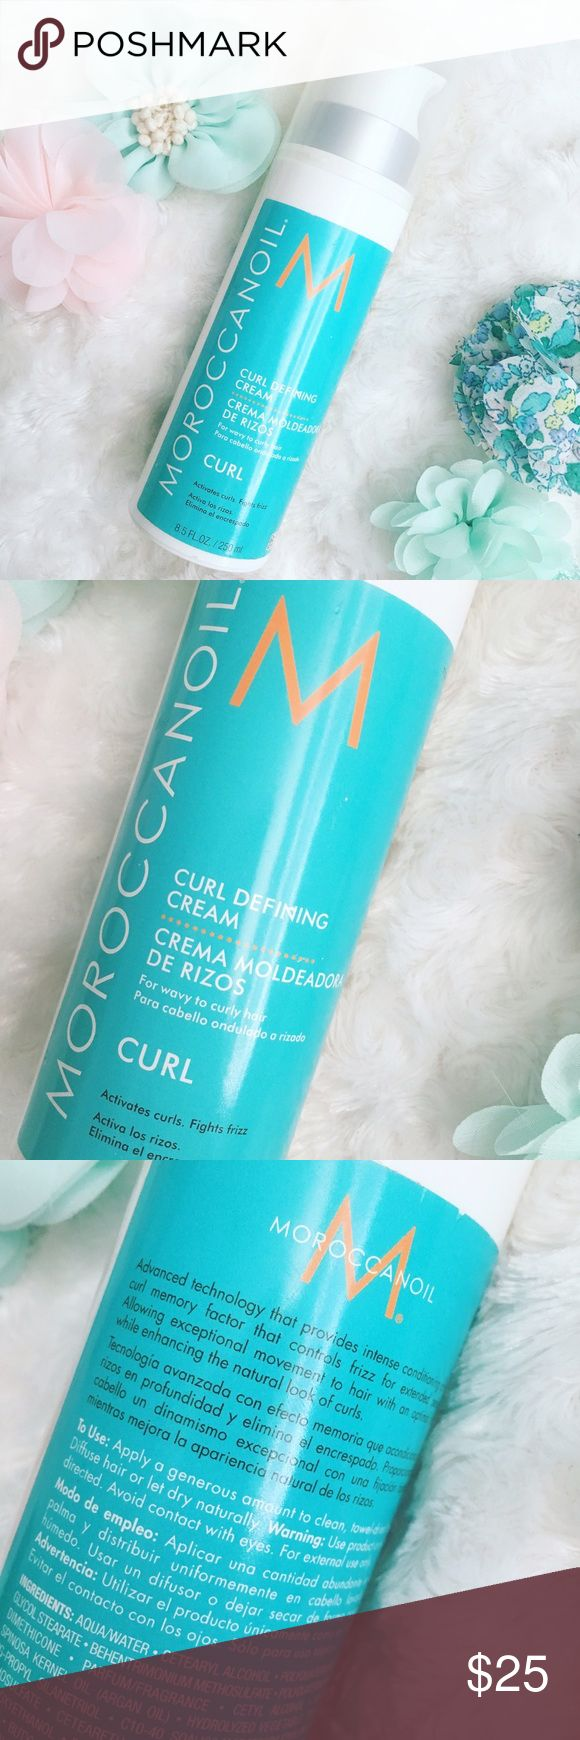 🐬BRAND NEW MOROCCAN OIL CURL CREAM🐬 🐬BRAND NEW MOROCCAN OIL CURL DEFINING CREAM🐬Easily activate and define curls while hydrating hair. Moroccanoil® Curl Defining Cream is one of the most popular products for curly hair🙌🏻This argan oil-infused curl definer features an advanced heat-activated technology that provides a curl memory factor to fight frizz and create well-defined, natural-looking, bouncy curls that last💁🏼 Brand new, never been used! 👍🏻 Reasonable offers only, no trades…